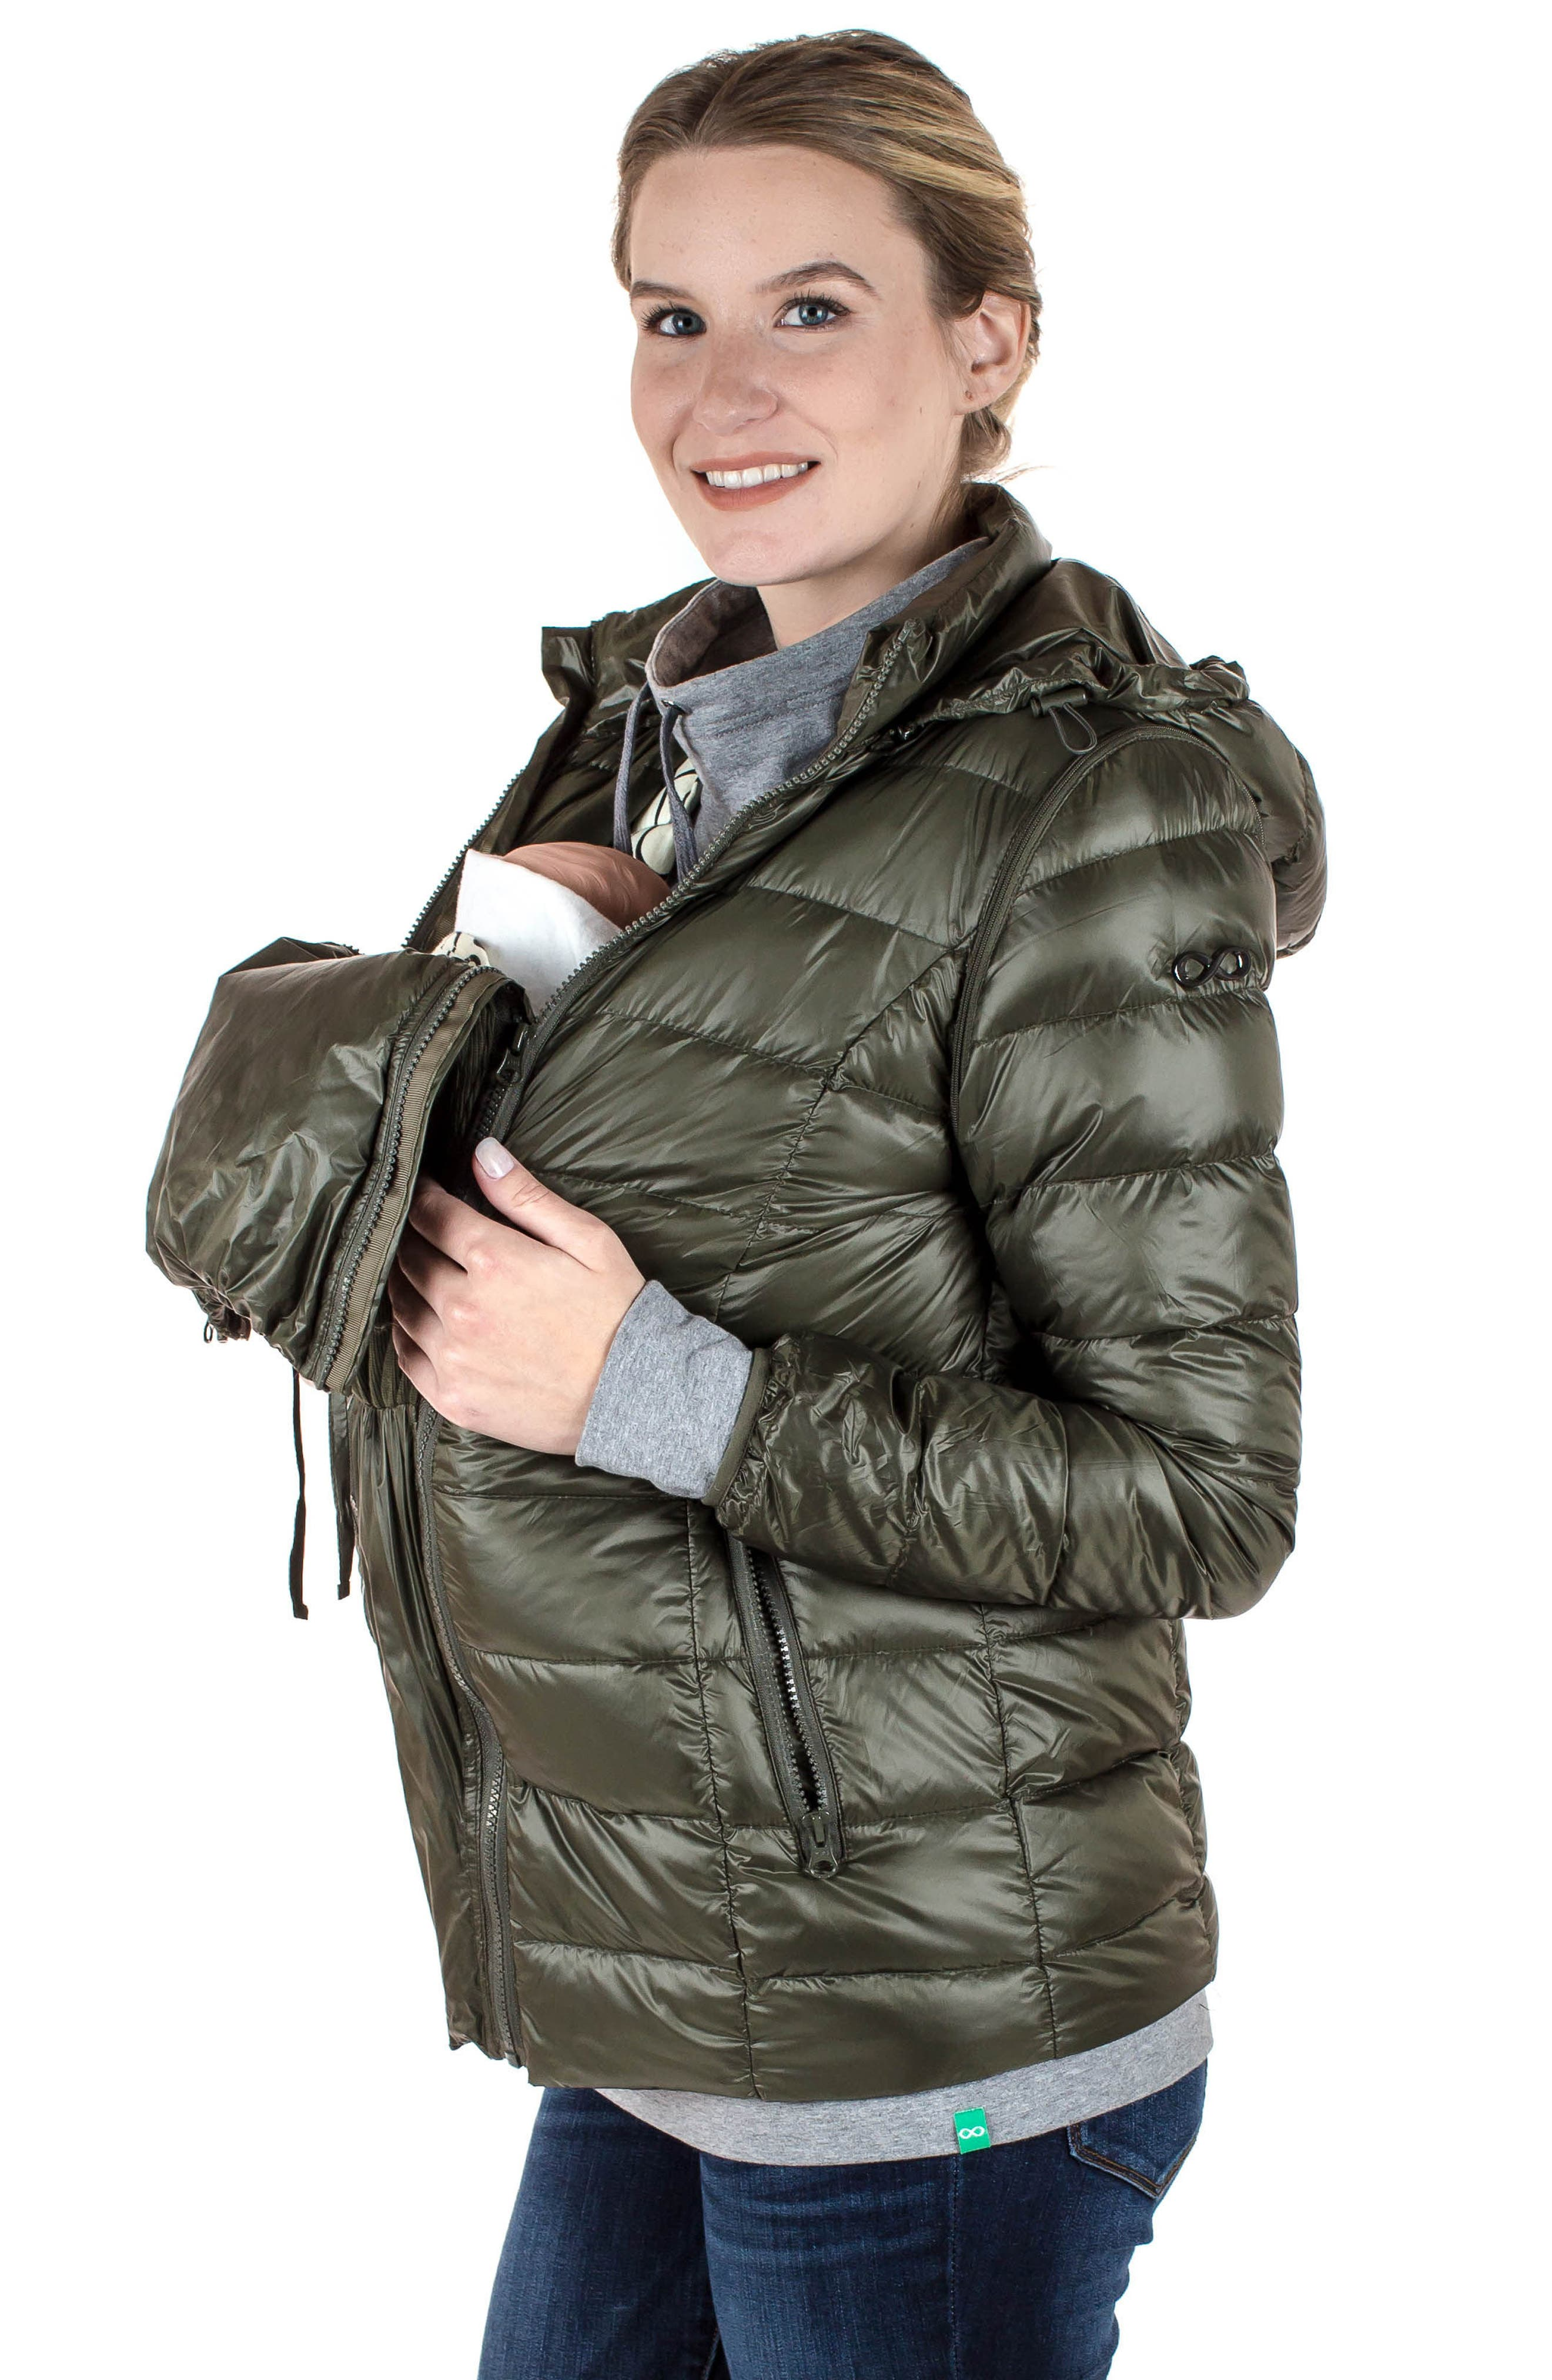 Lightweight Puffer Convertible 3-in-1 Maternity Jacket,                             Alternate thumbnail 12, color,                             KHAKI GREEN